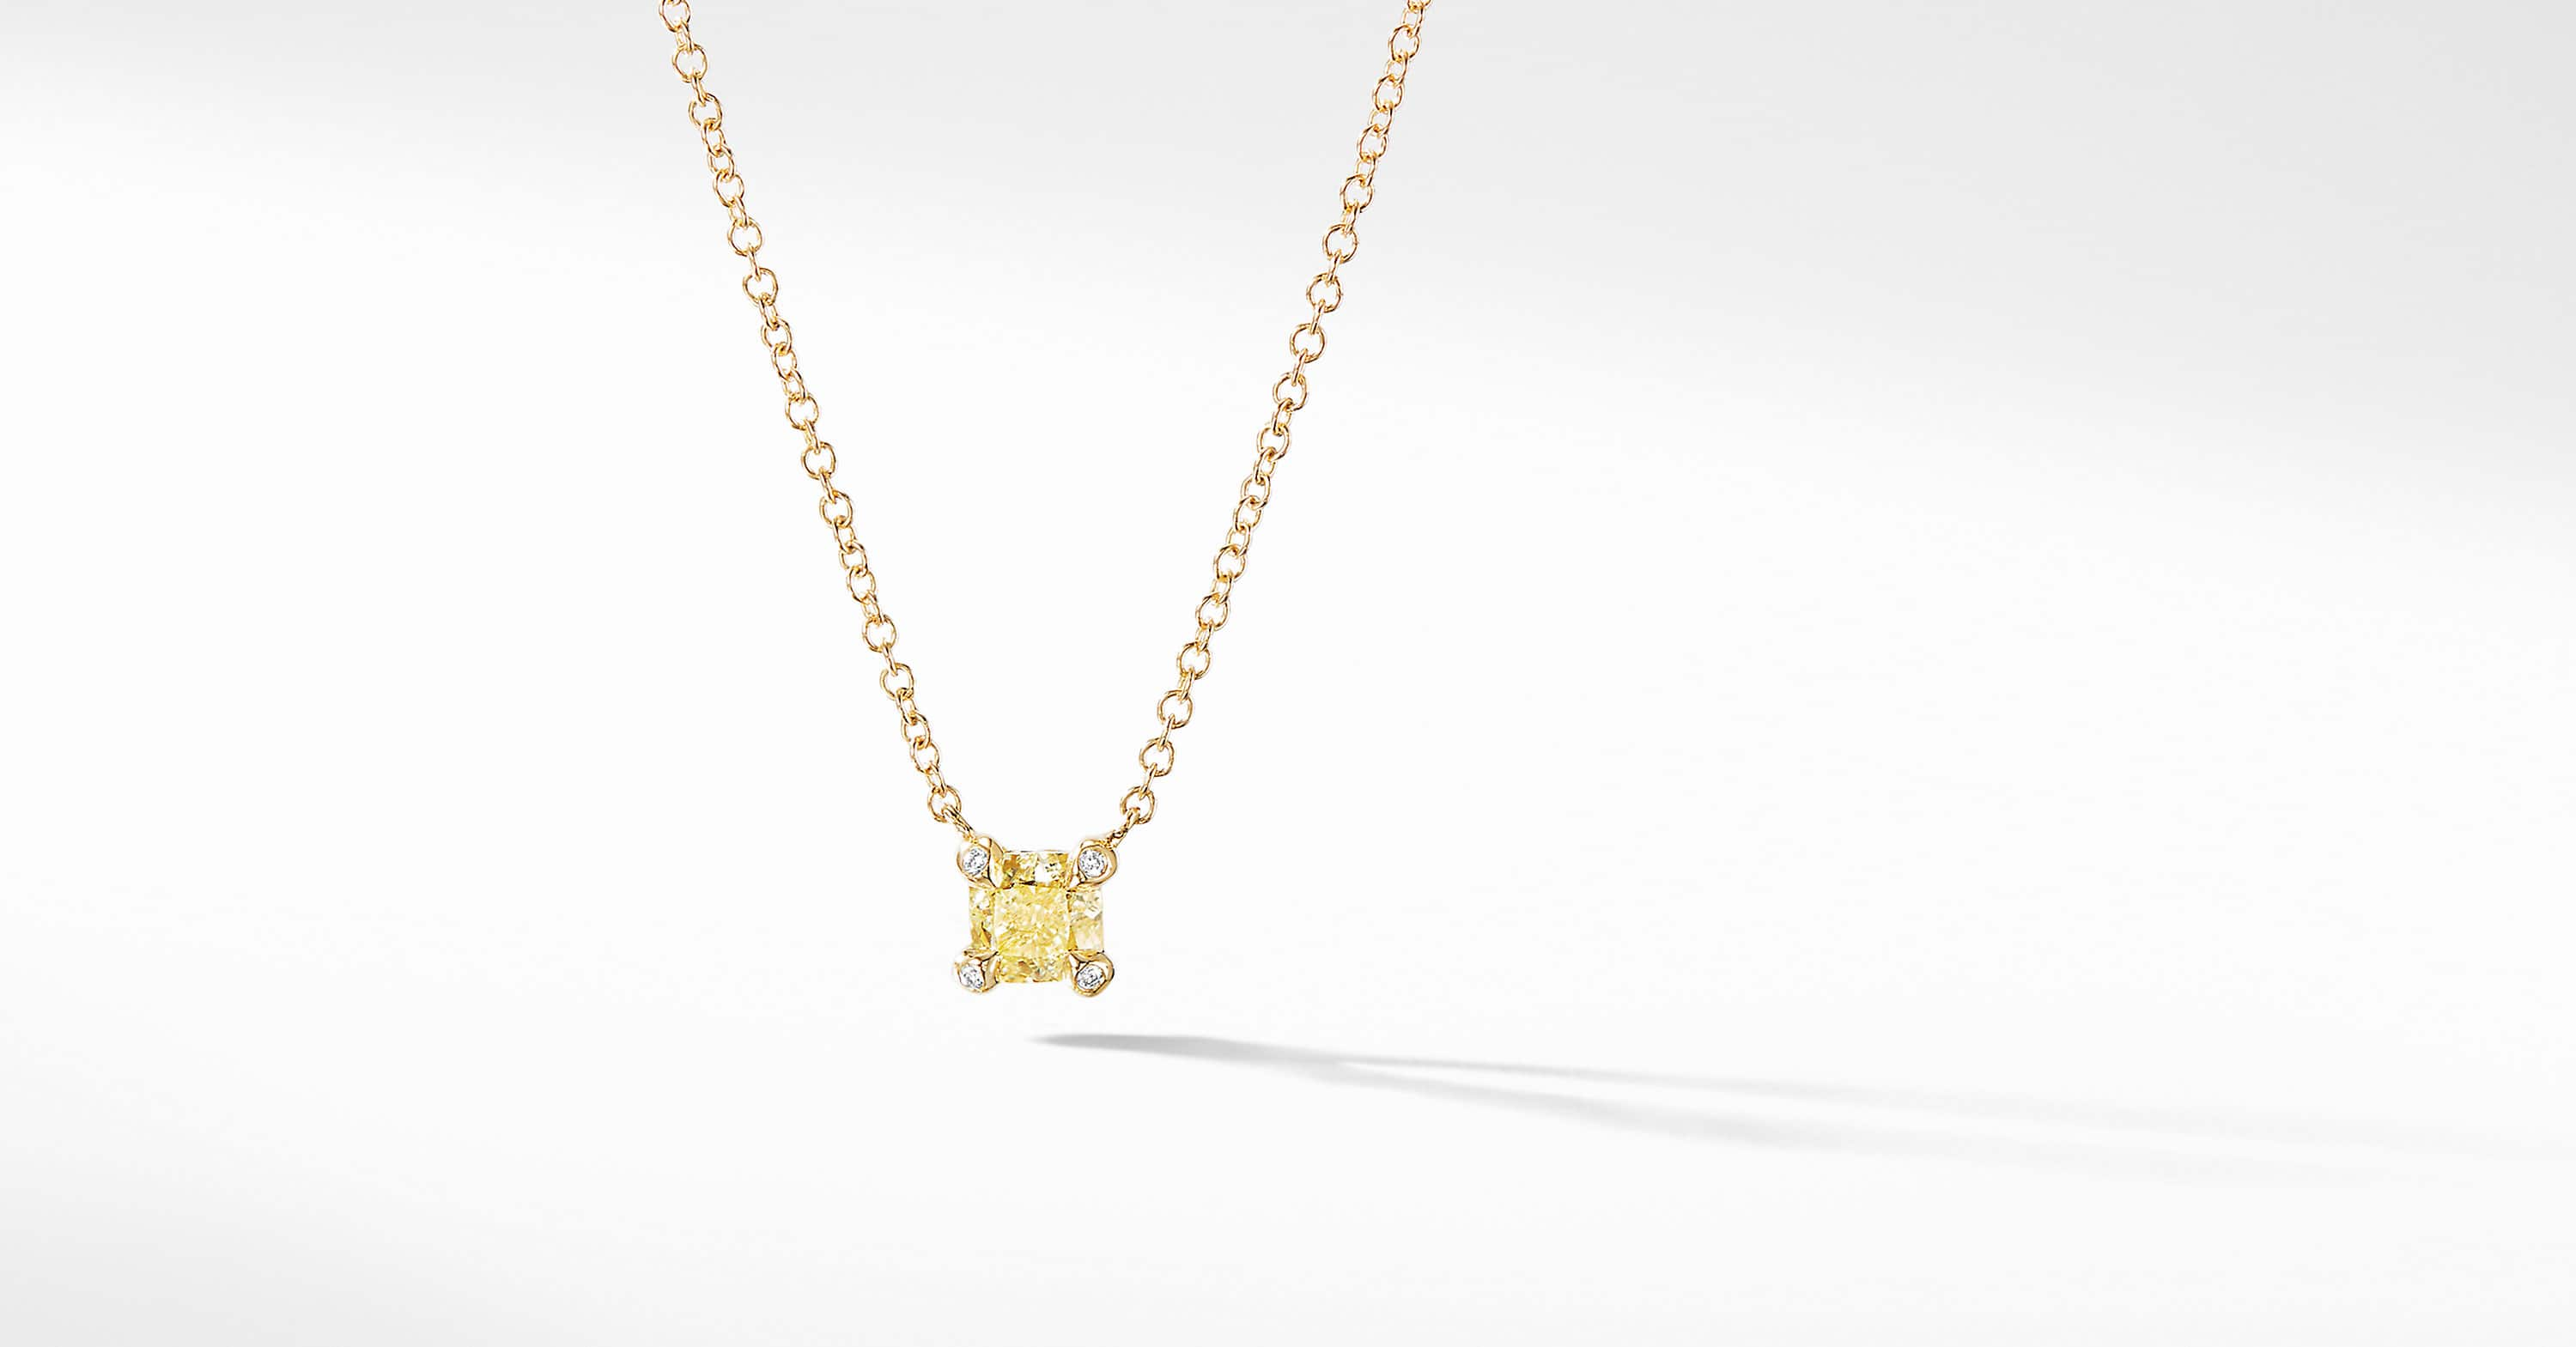 Precious Chatelaine Pendant Necklace with Yellow Diamonds in 18K Gold